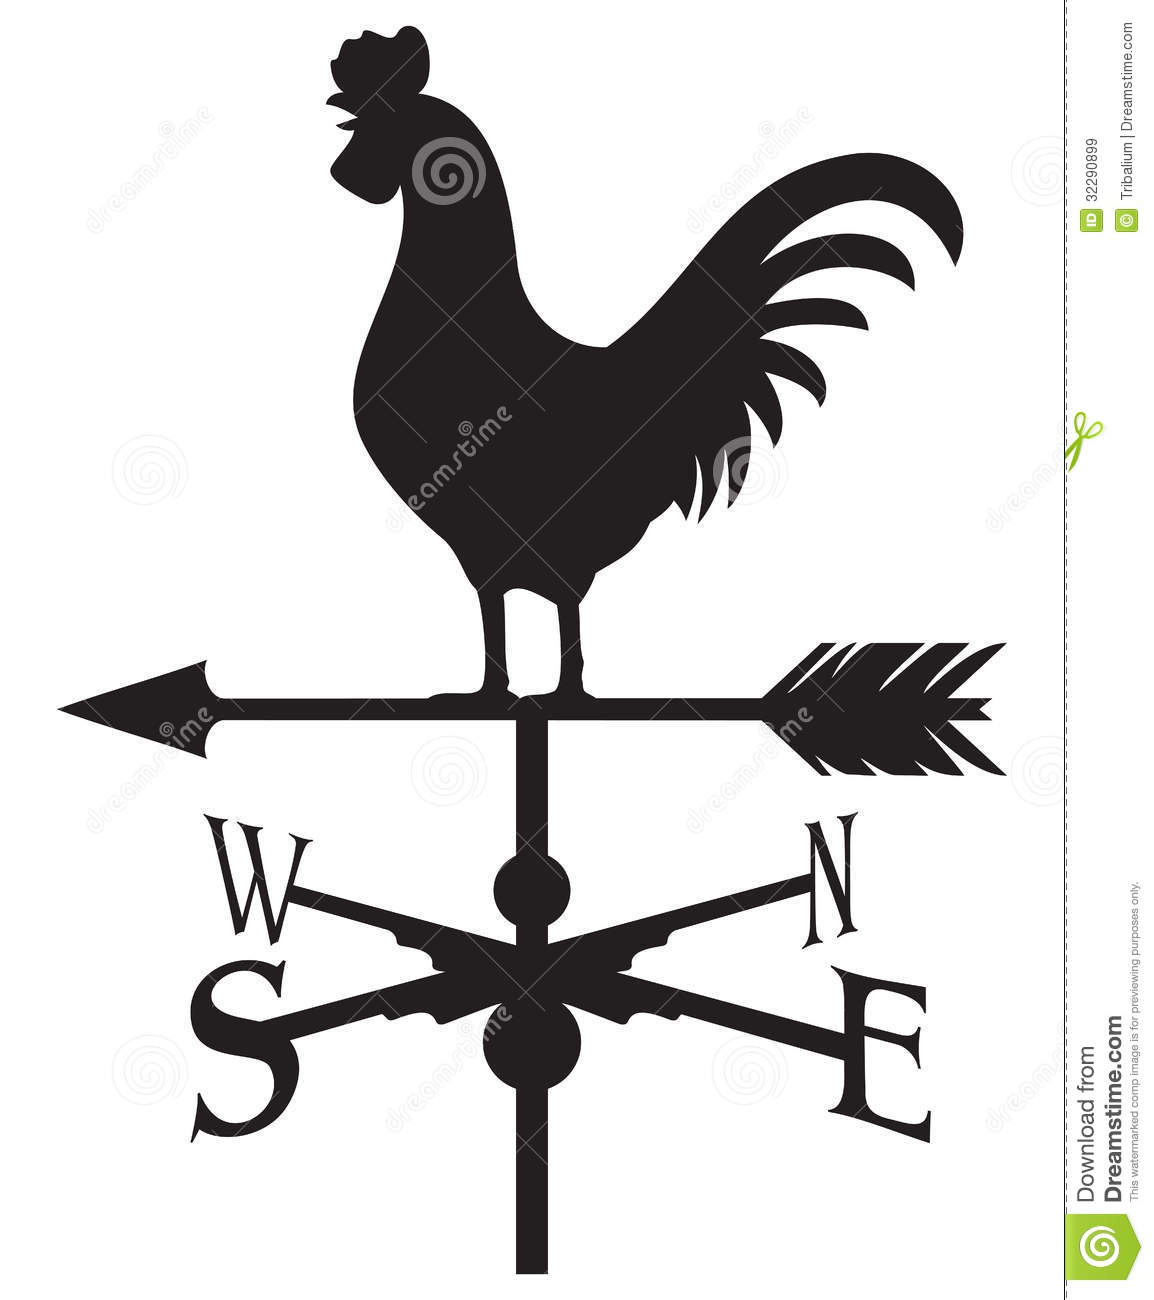 Cartoon weather vane arrow clipart.